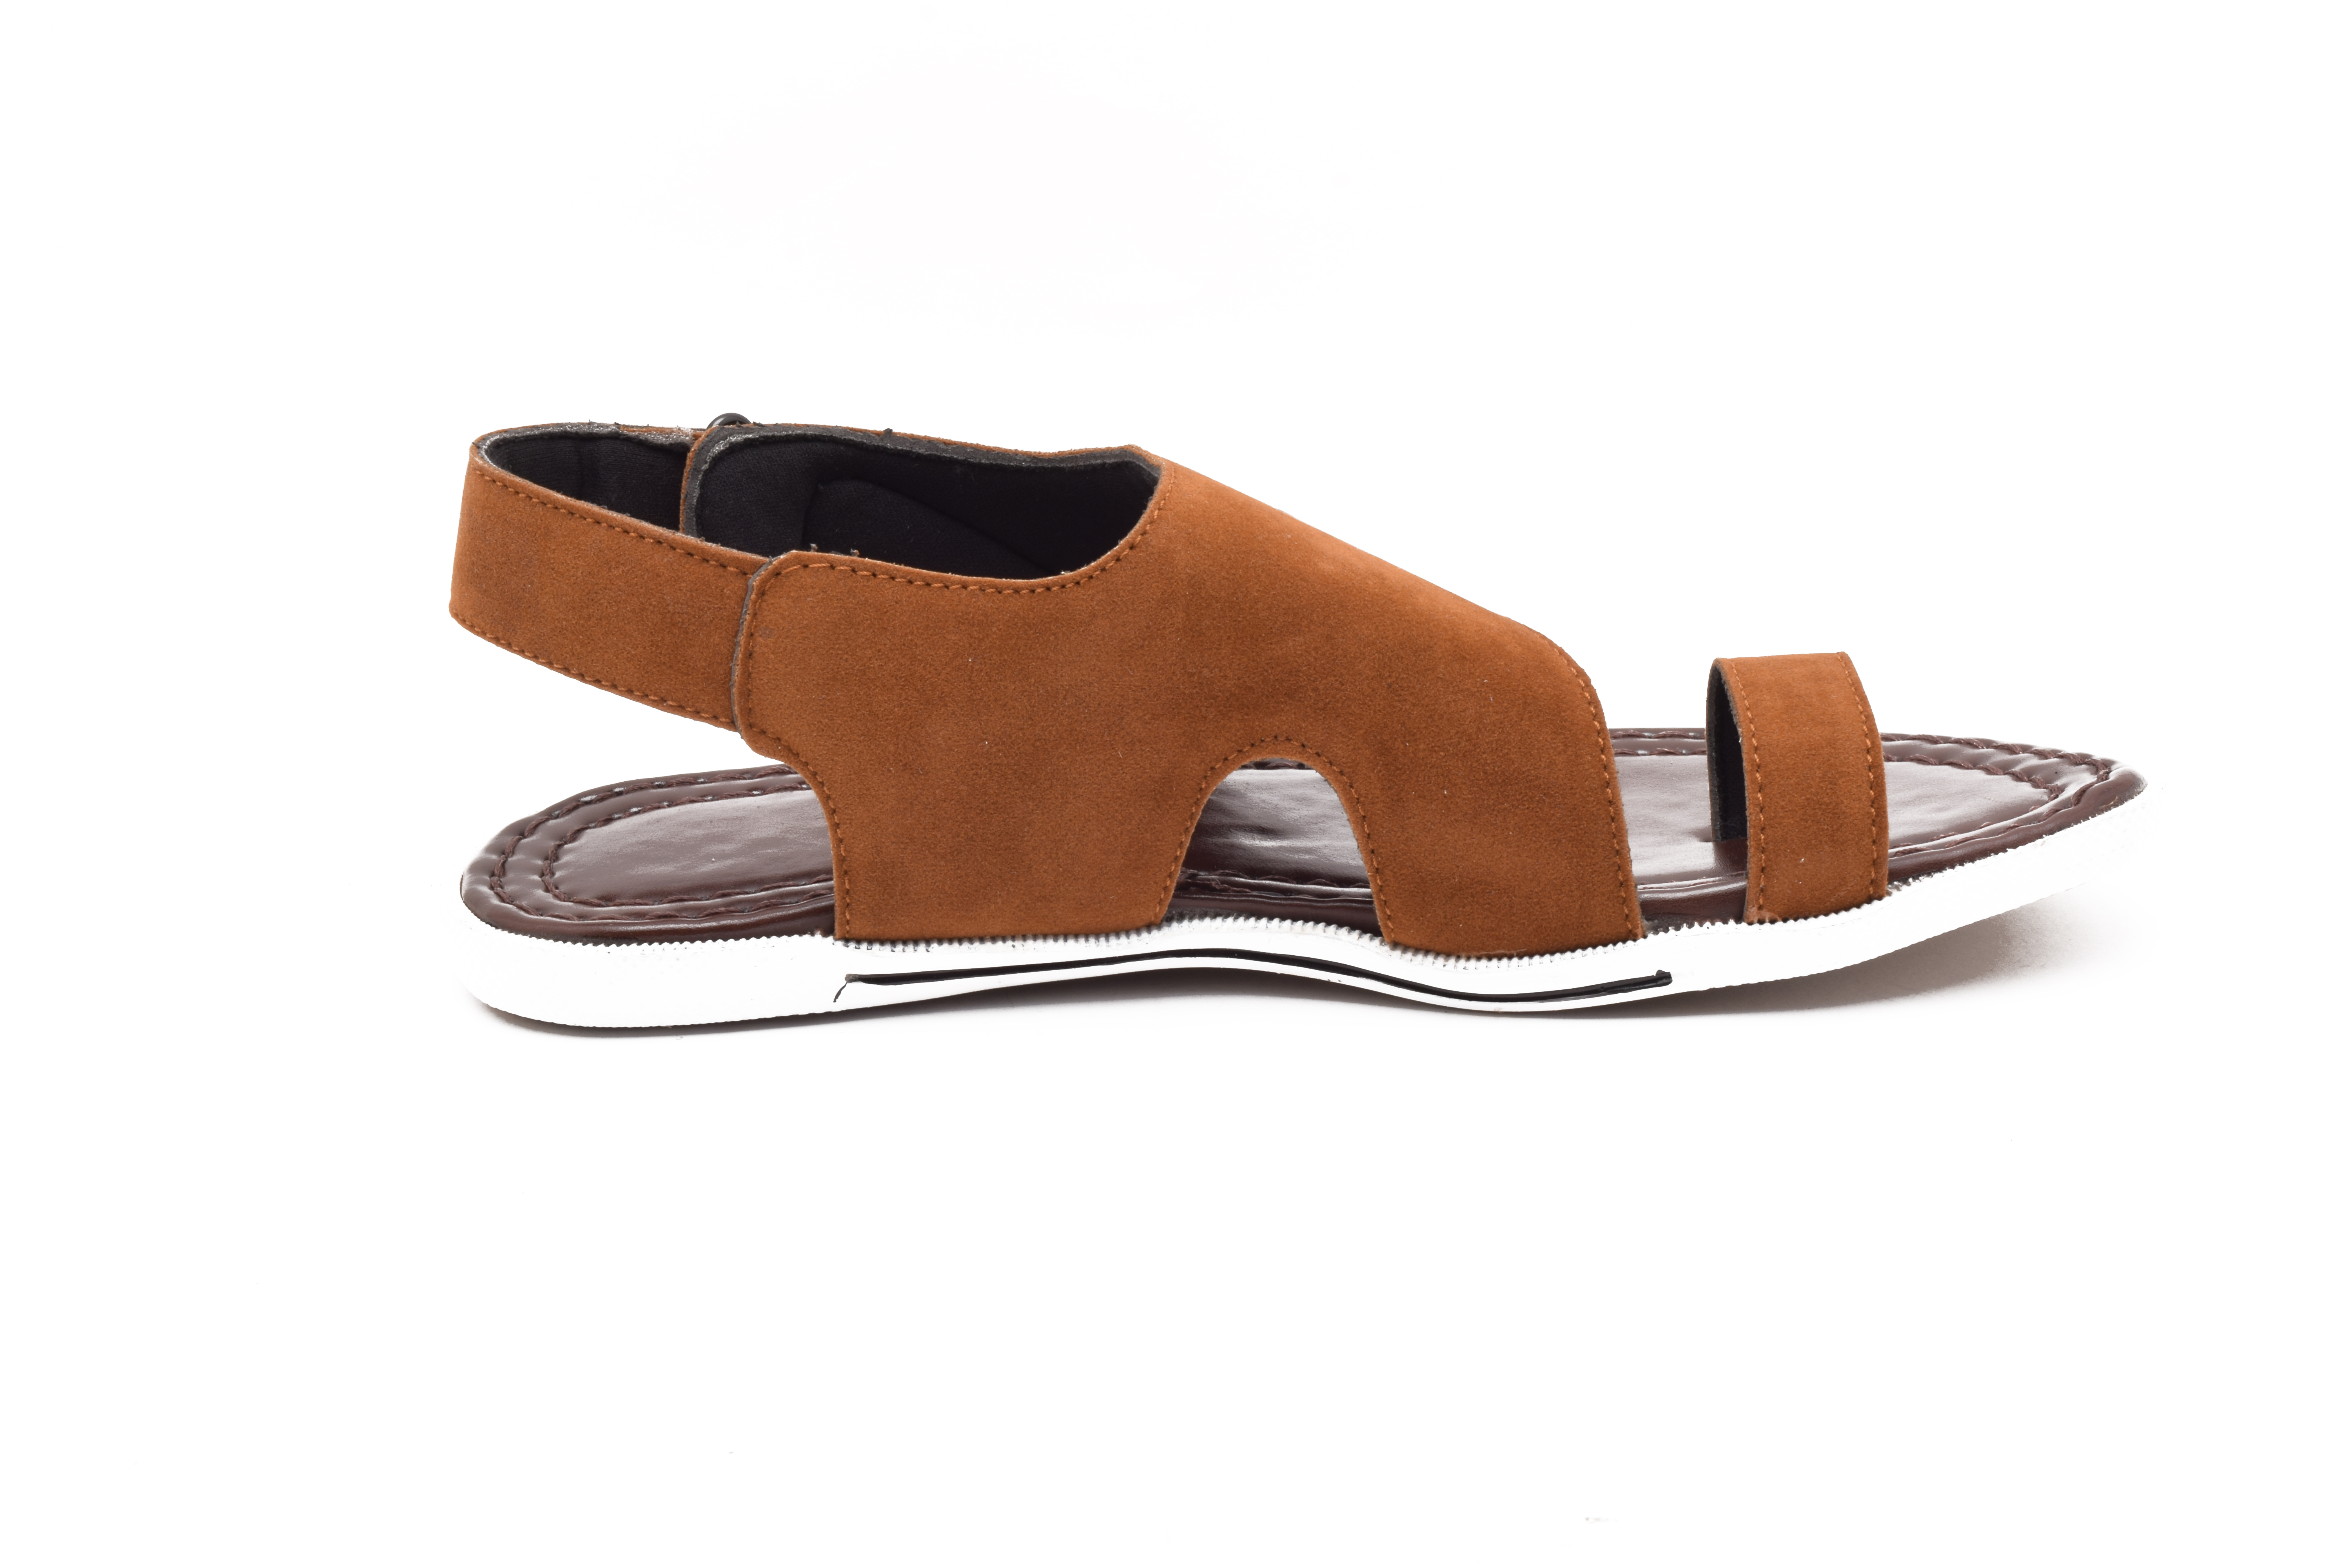 67a4db46d48 Shop. Home   Men s Featured   Stylish ethnic sandals for mens.